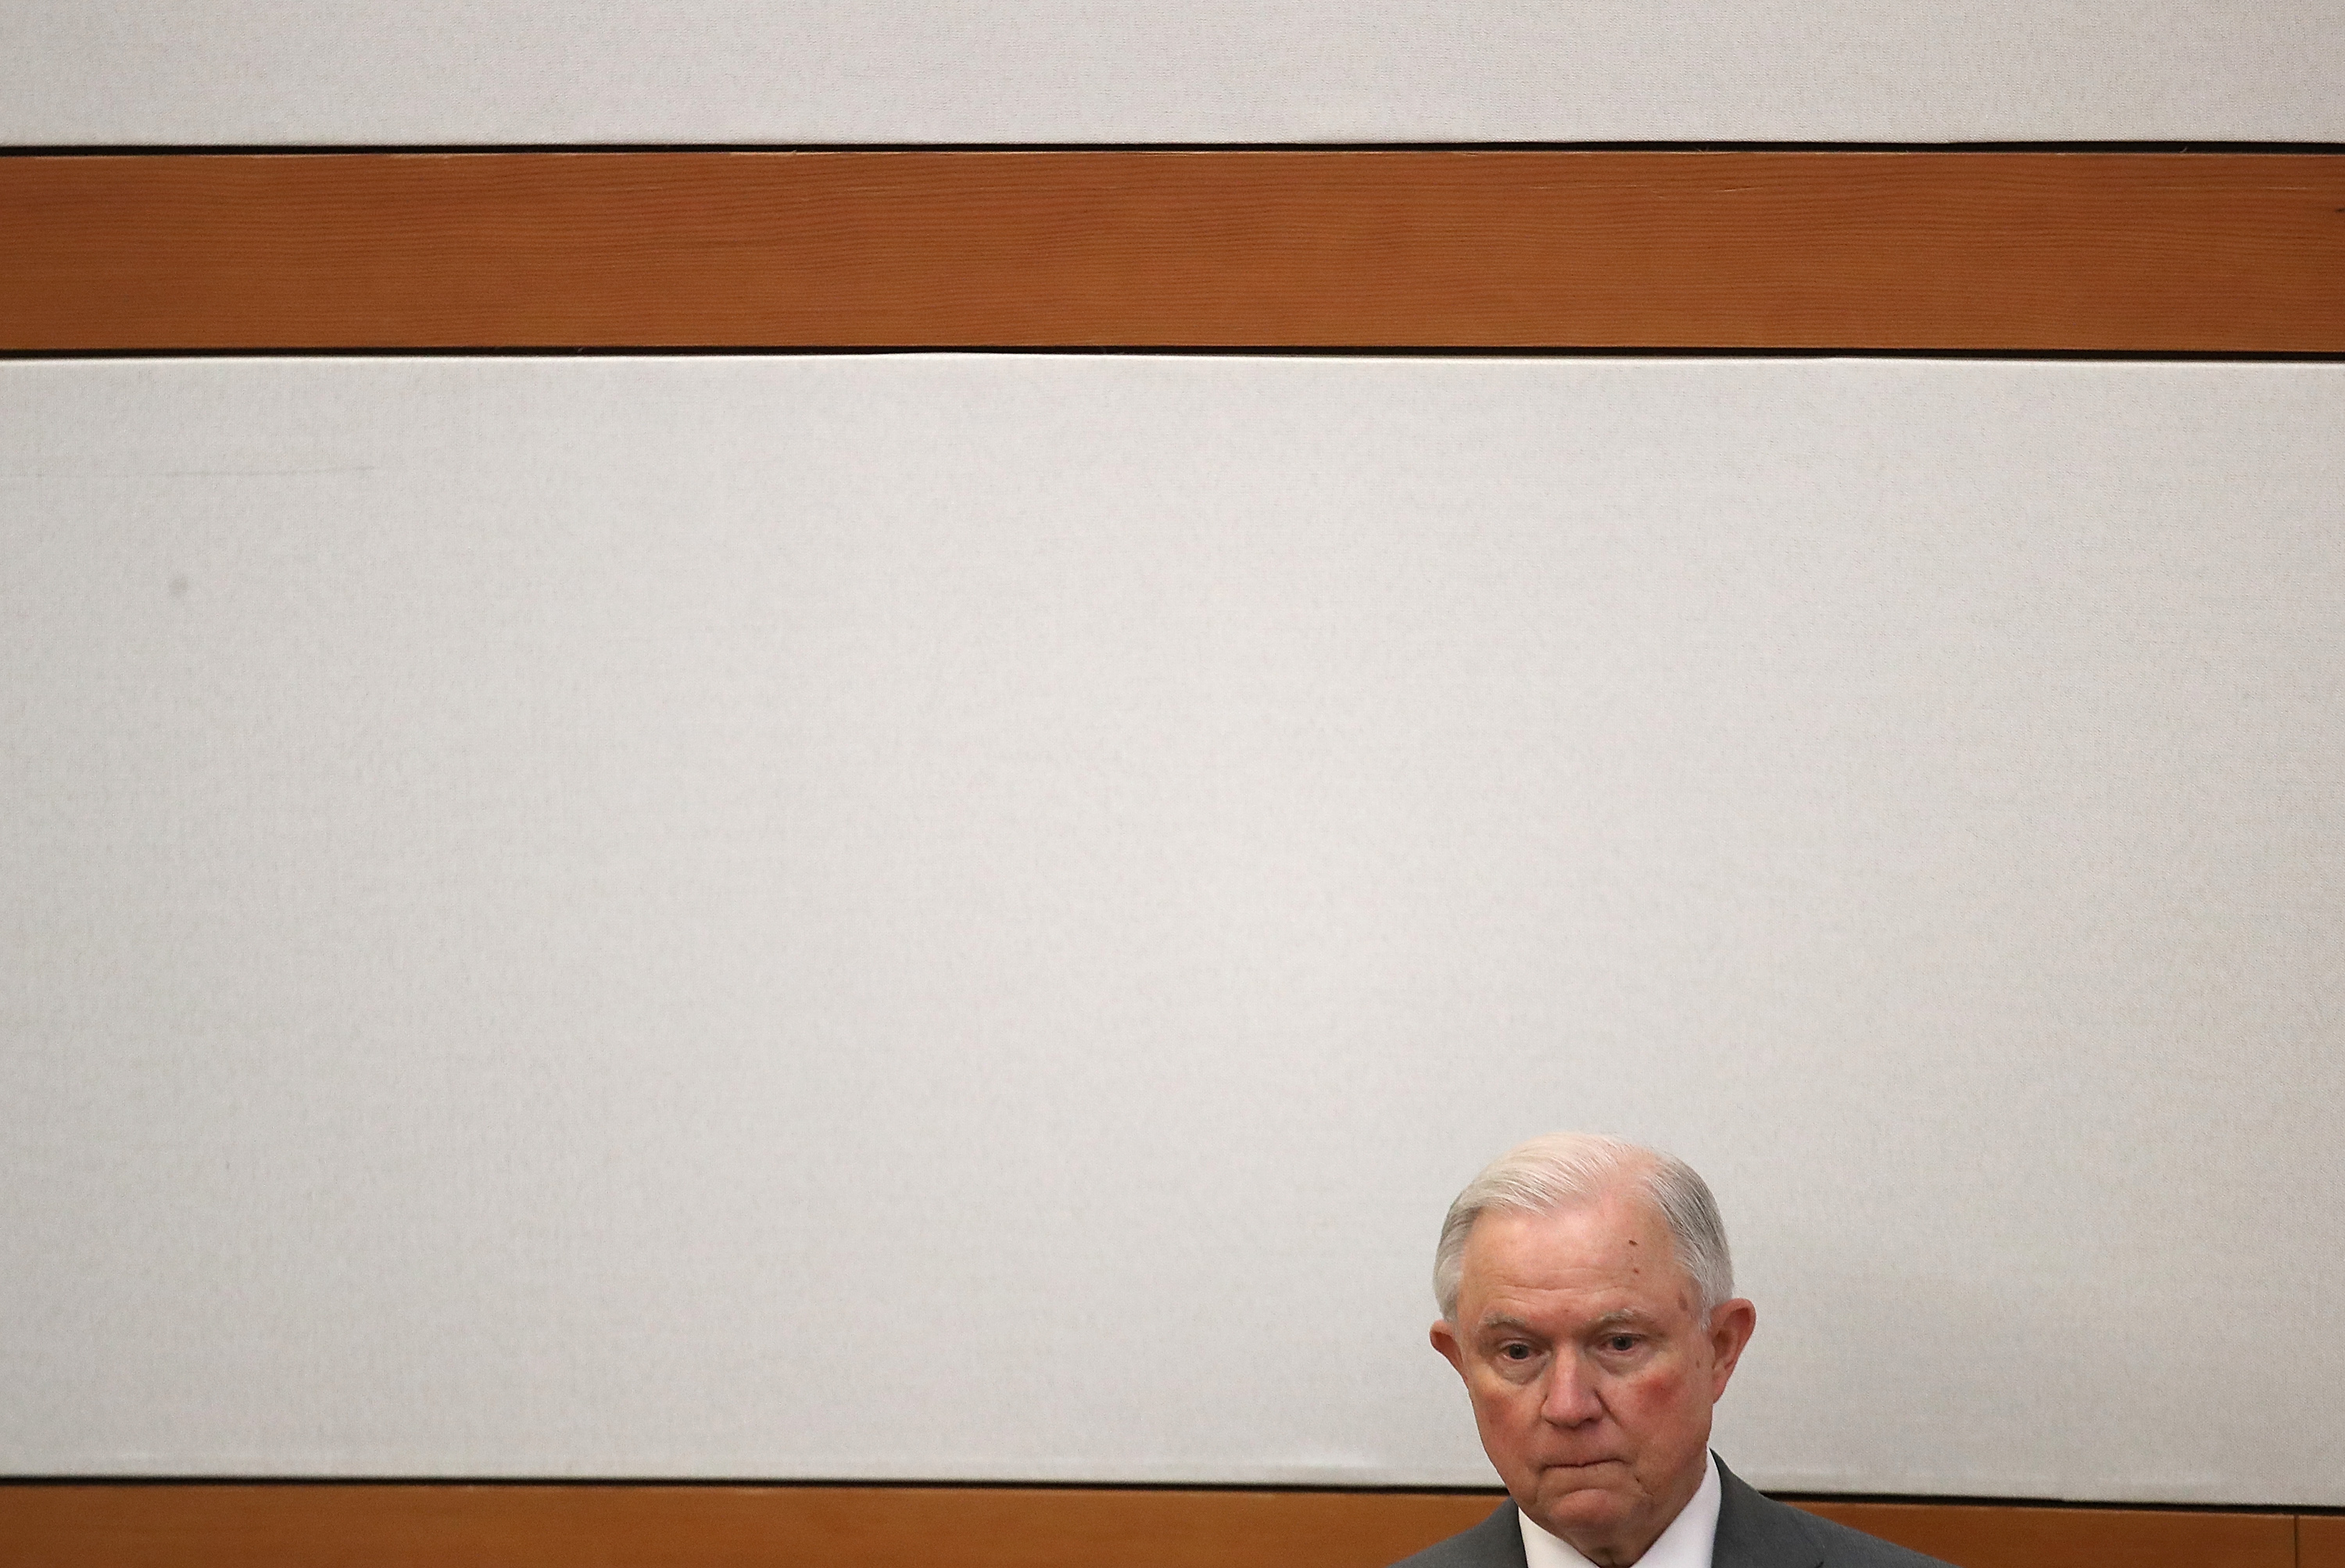 What happens to Mueller's investigation if Jeff Sessions is fired or quits?